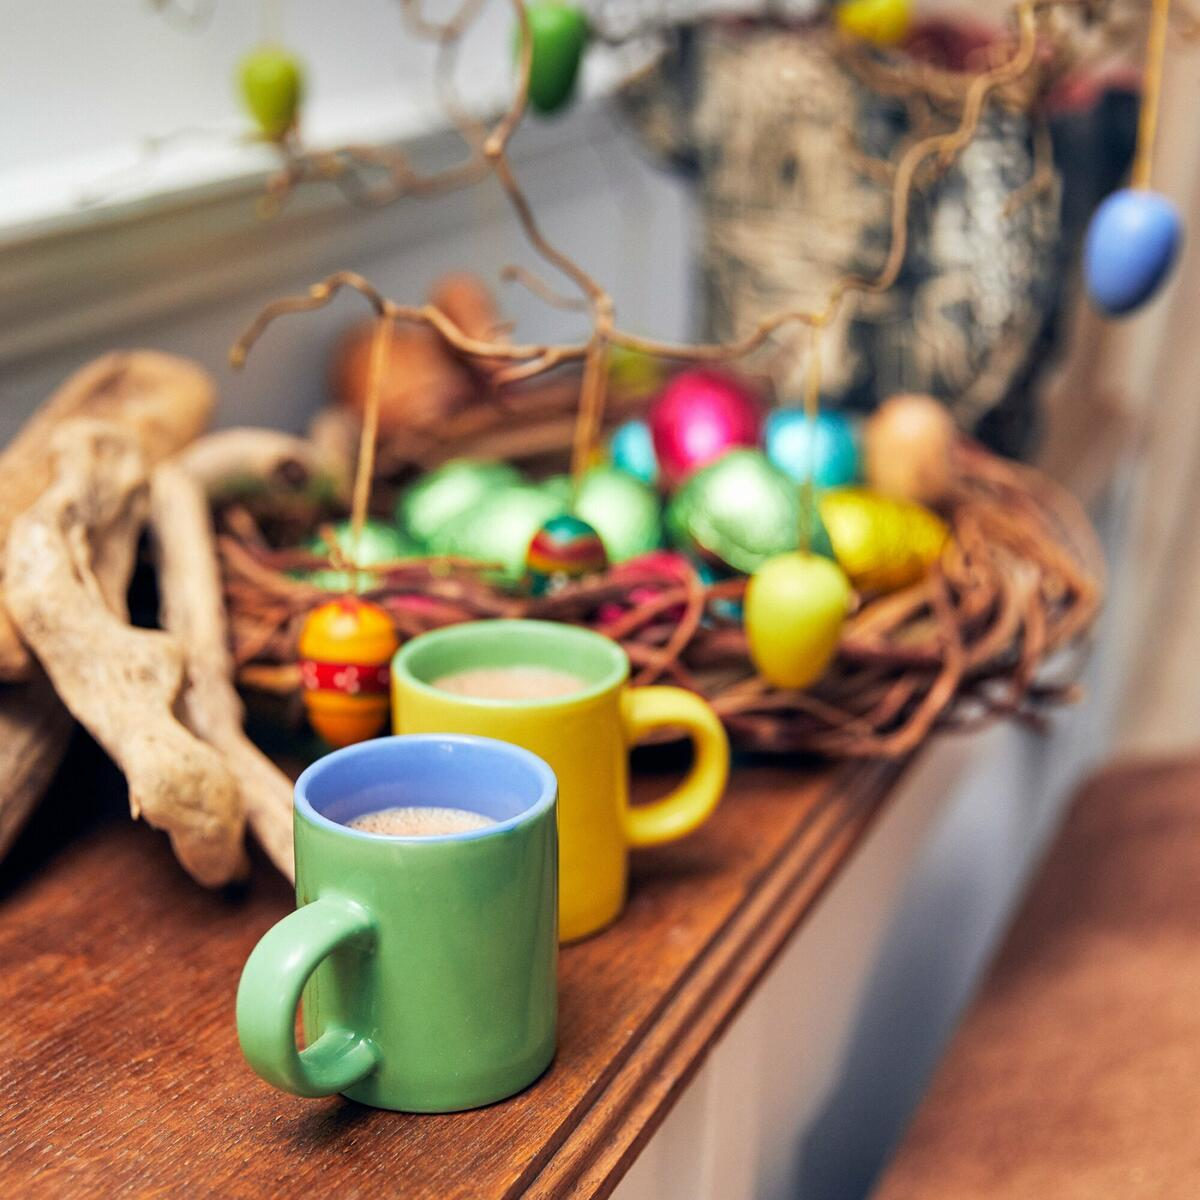 Seasonal decoration, Easter ready - hot chocolate, eggs and marshmallows